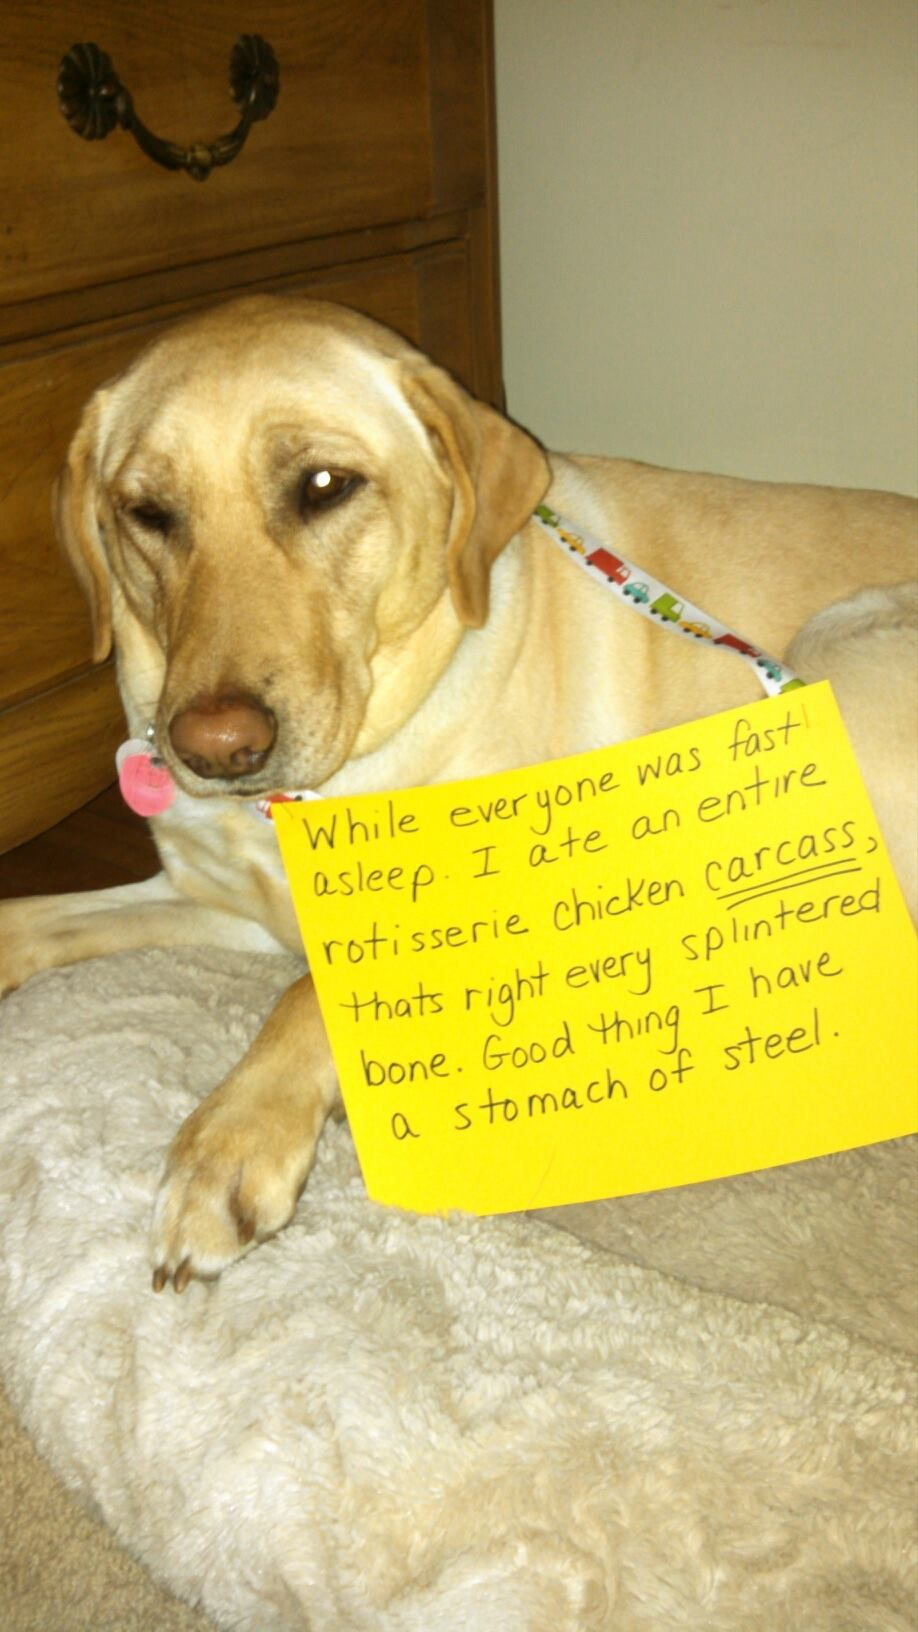 My Dog Ate Chicken Bones, What Can I Do Dog shaming, Dog